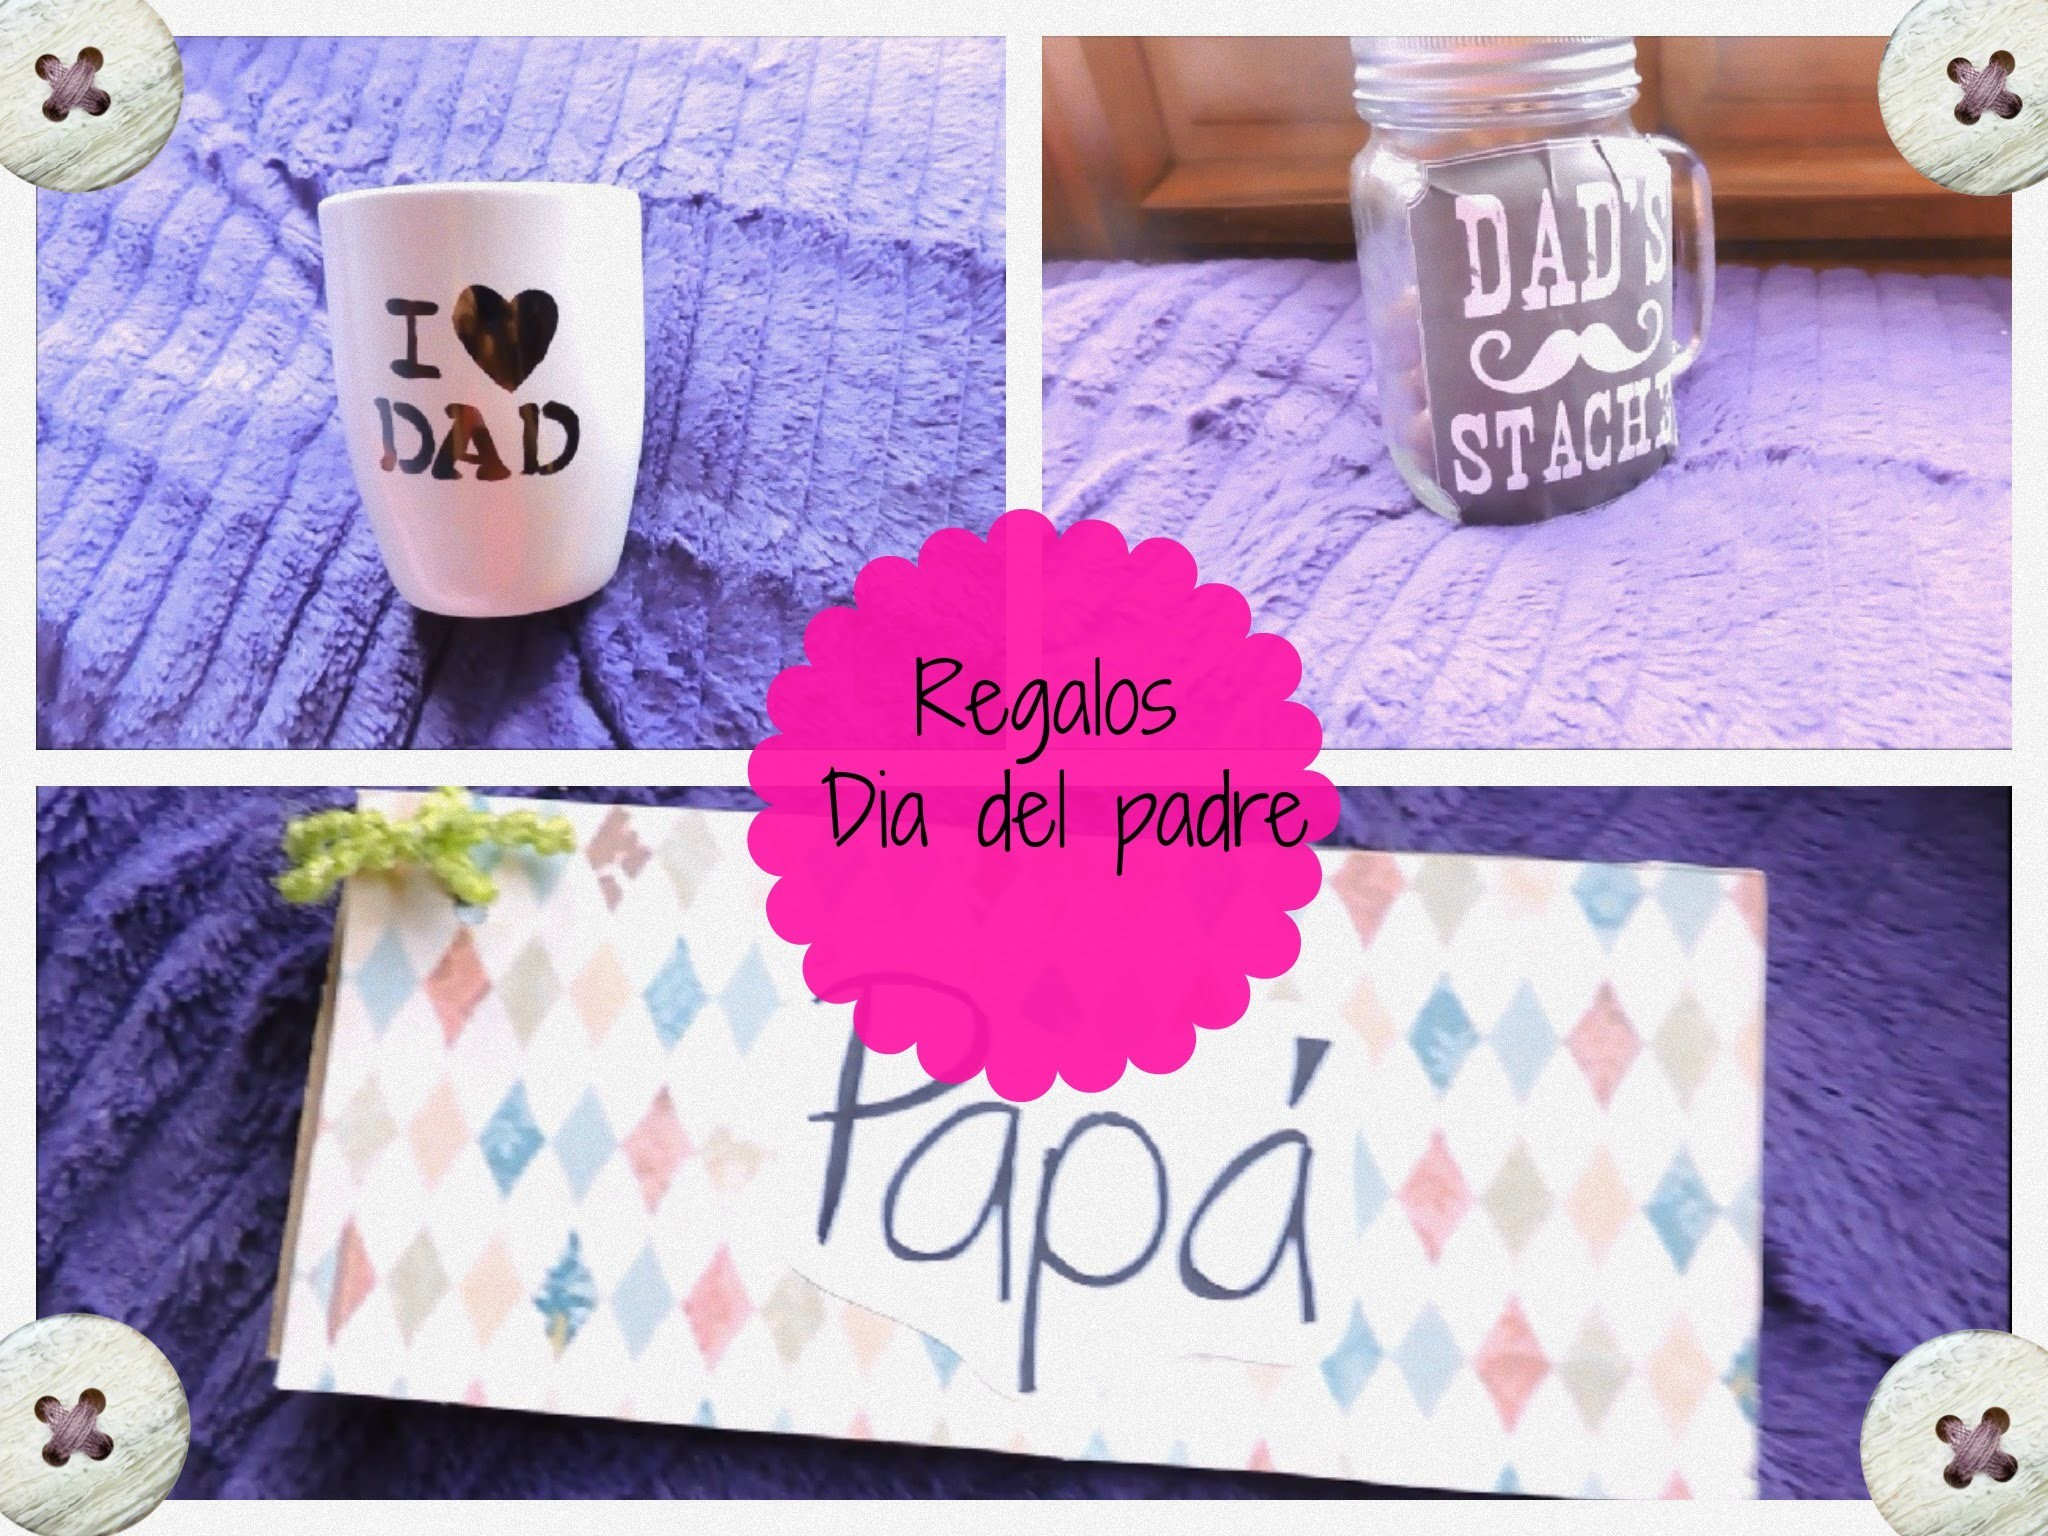 D.I.Y Regalos dia del padre. Fathers day gifts ideas